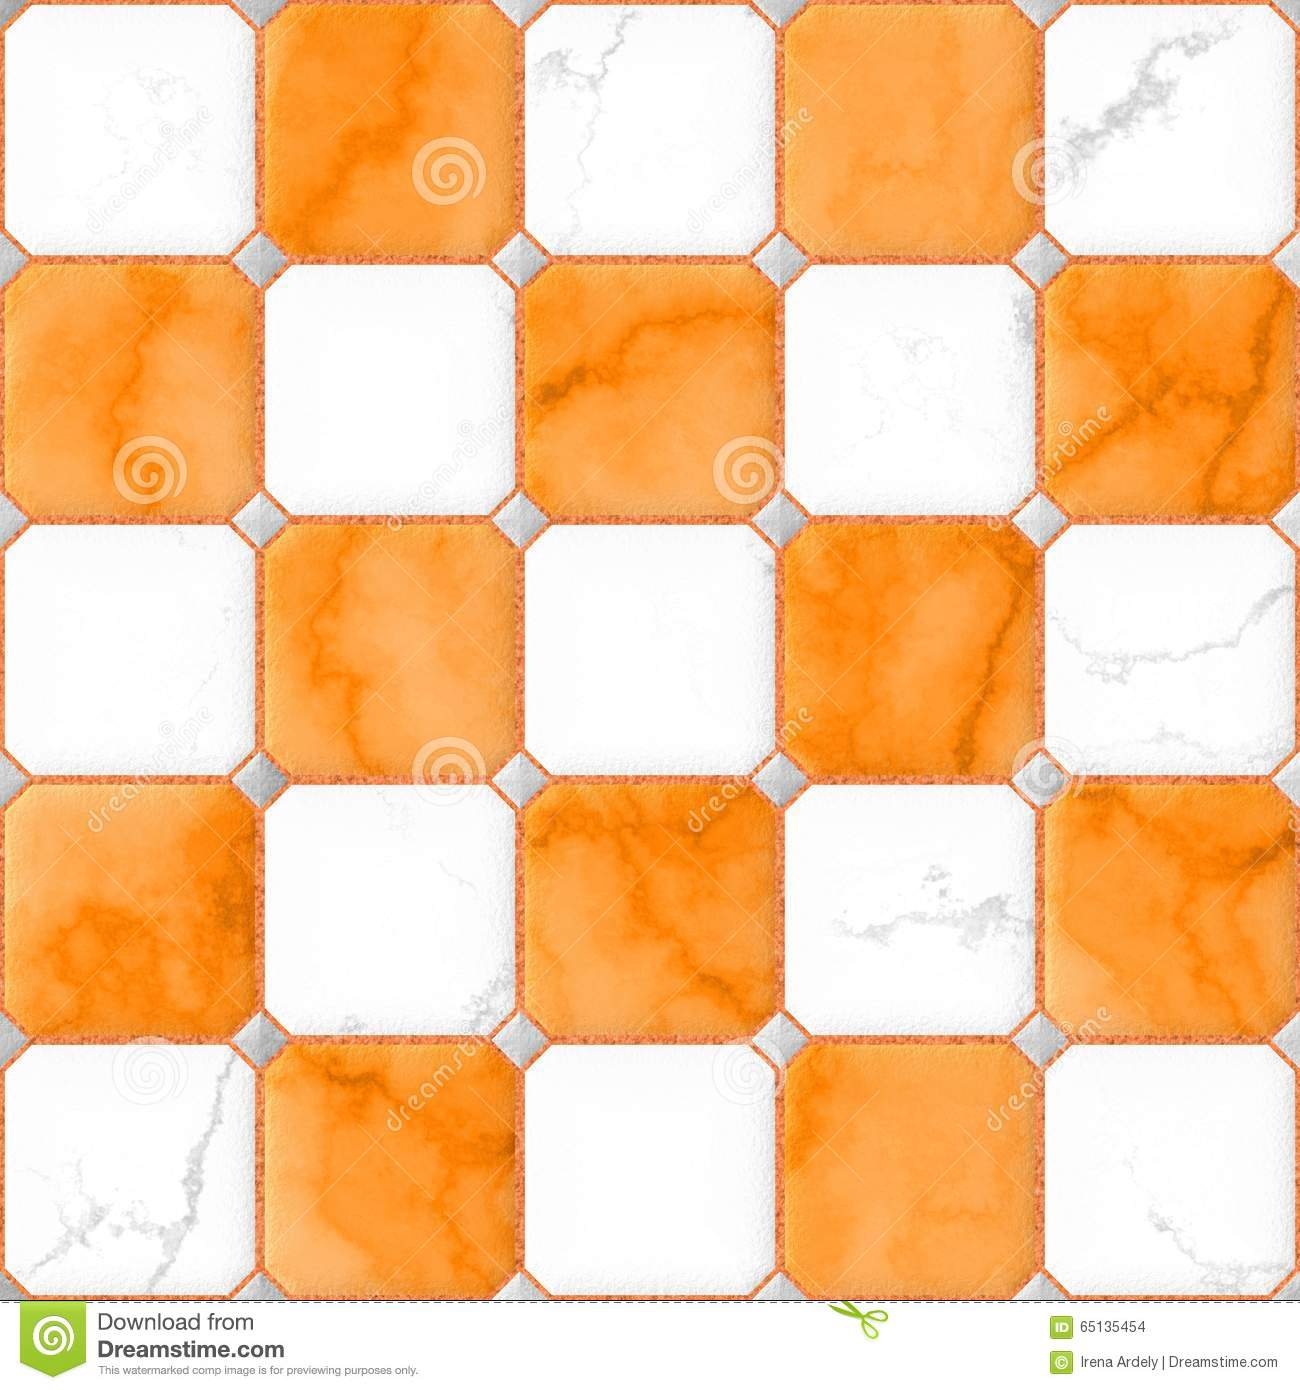 Orange And White Marble Square Floor Tiles With Gray